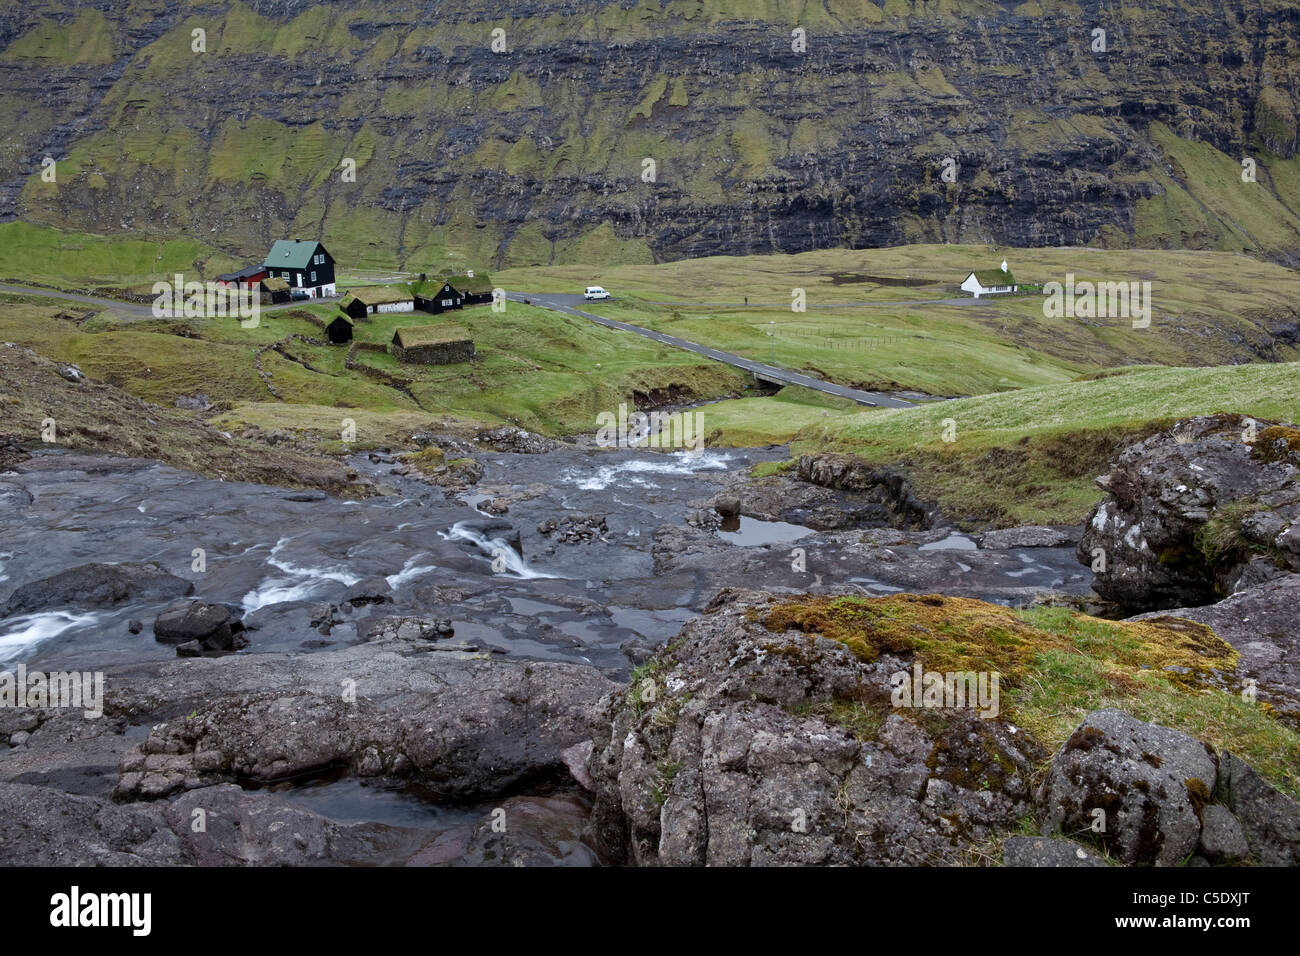 High angle view of country houses at a distance with rock stream in foreground at Faroe Islands - Stock Image